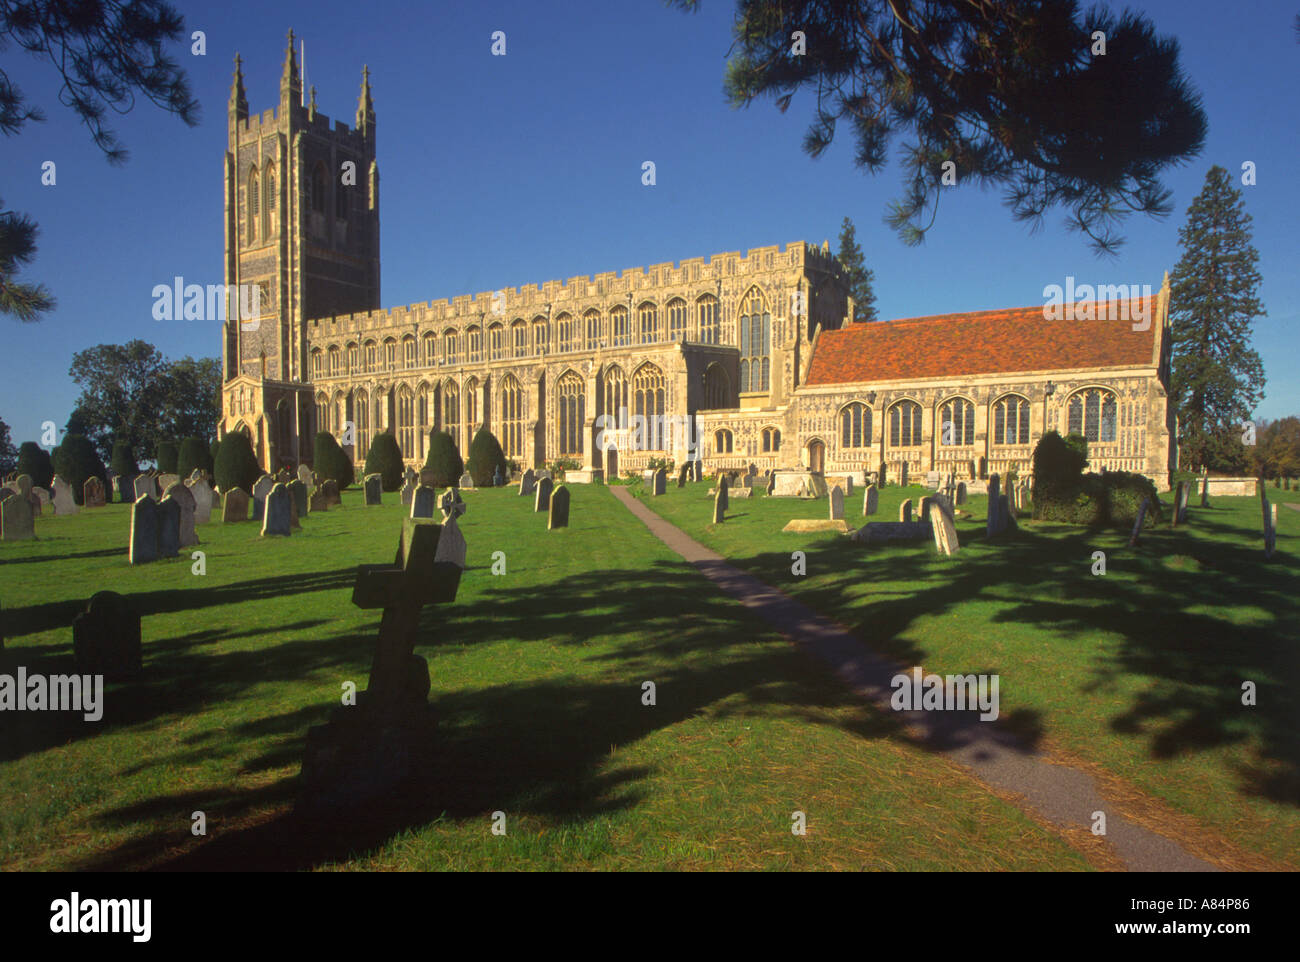 The wool church of Holy Trinity in Long Melford Suffolk England UK - Stock Image